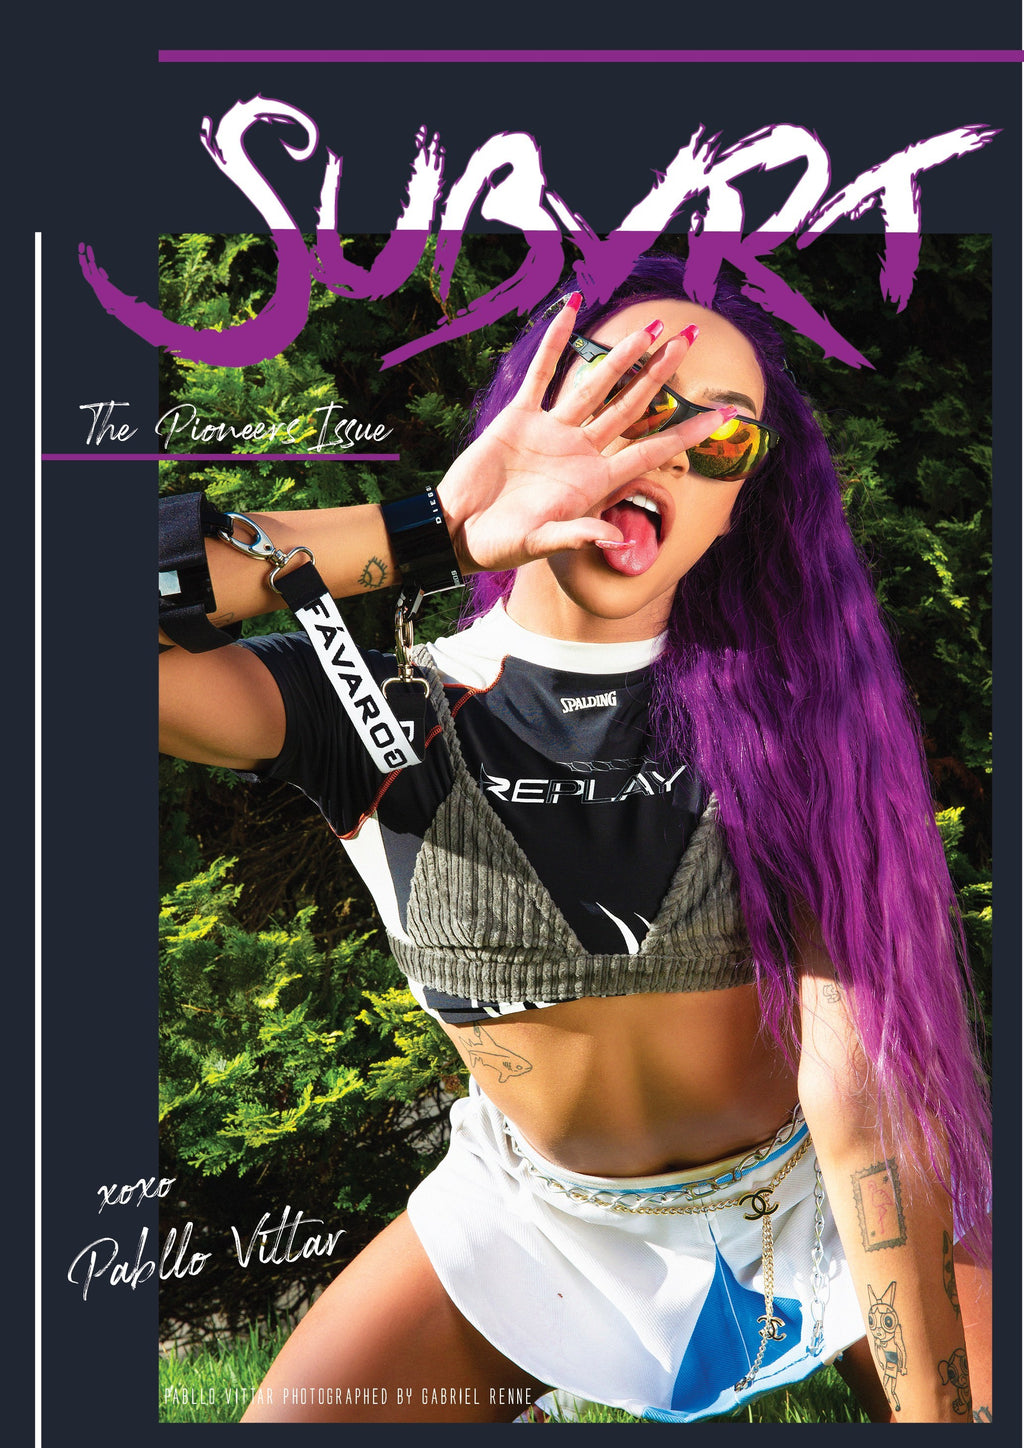 Subvrt Magazine Issue 3 : The Pioneers Issue